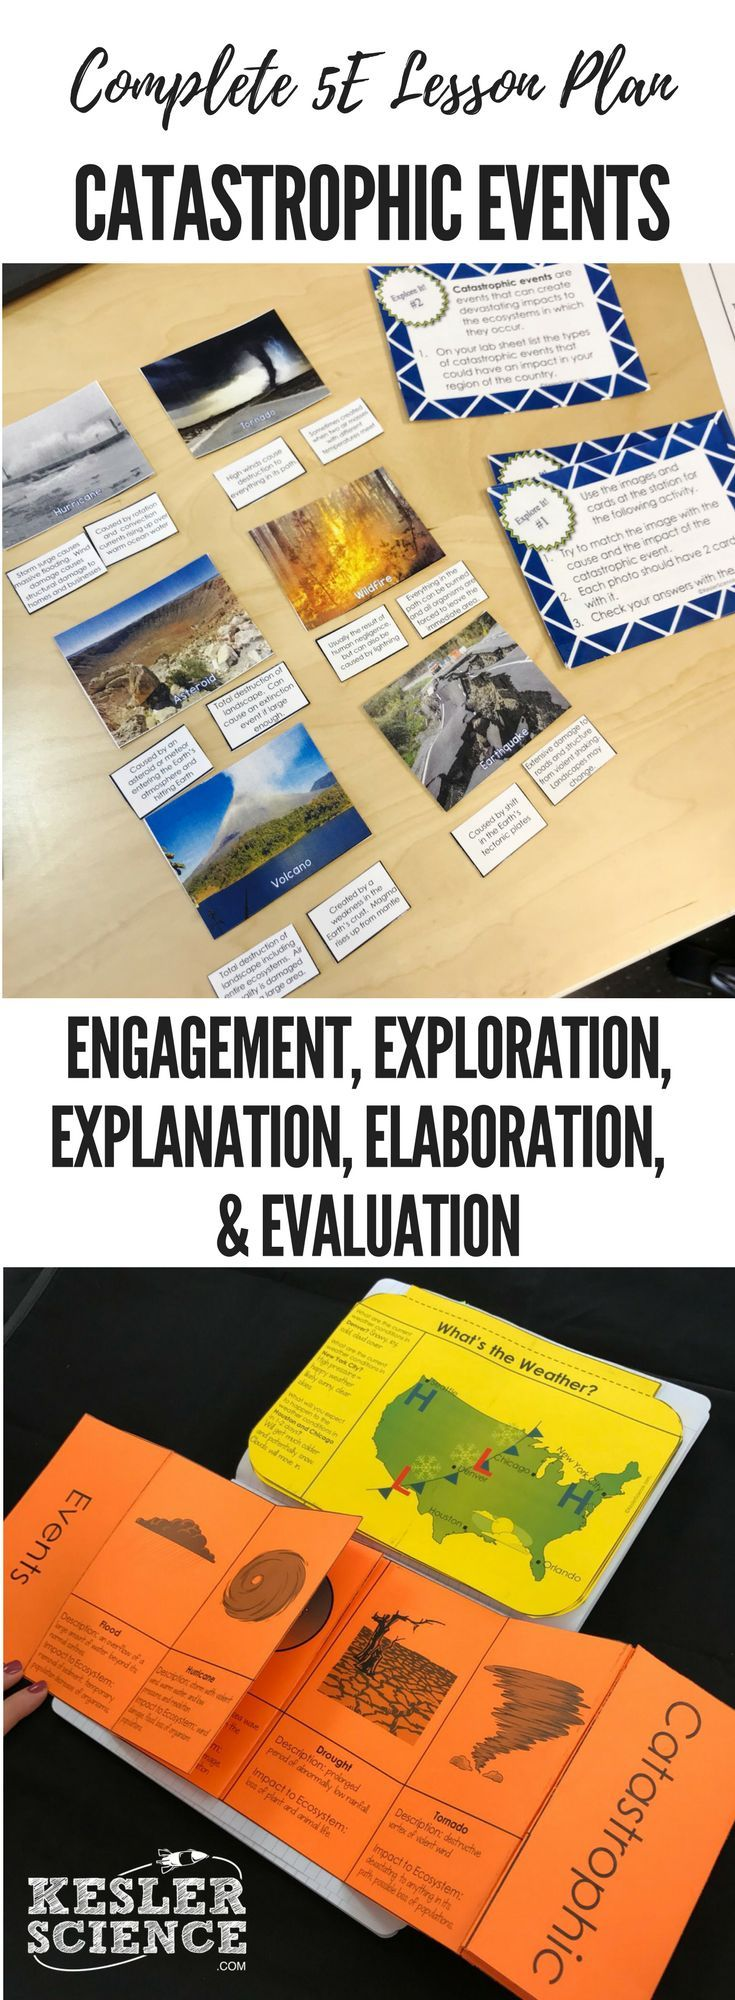 Catastrophic Events Worksheet Middle School Inside The Earth Diagram Of Earth39s Interior Best 25 Science Labs Ideas On Pinterest Kids Lab 4th Grade Experiments And